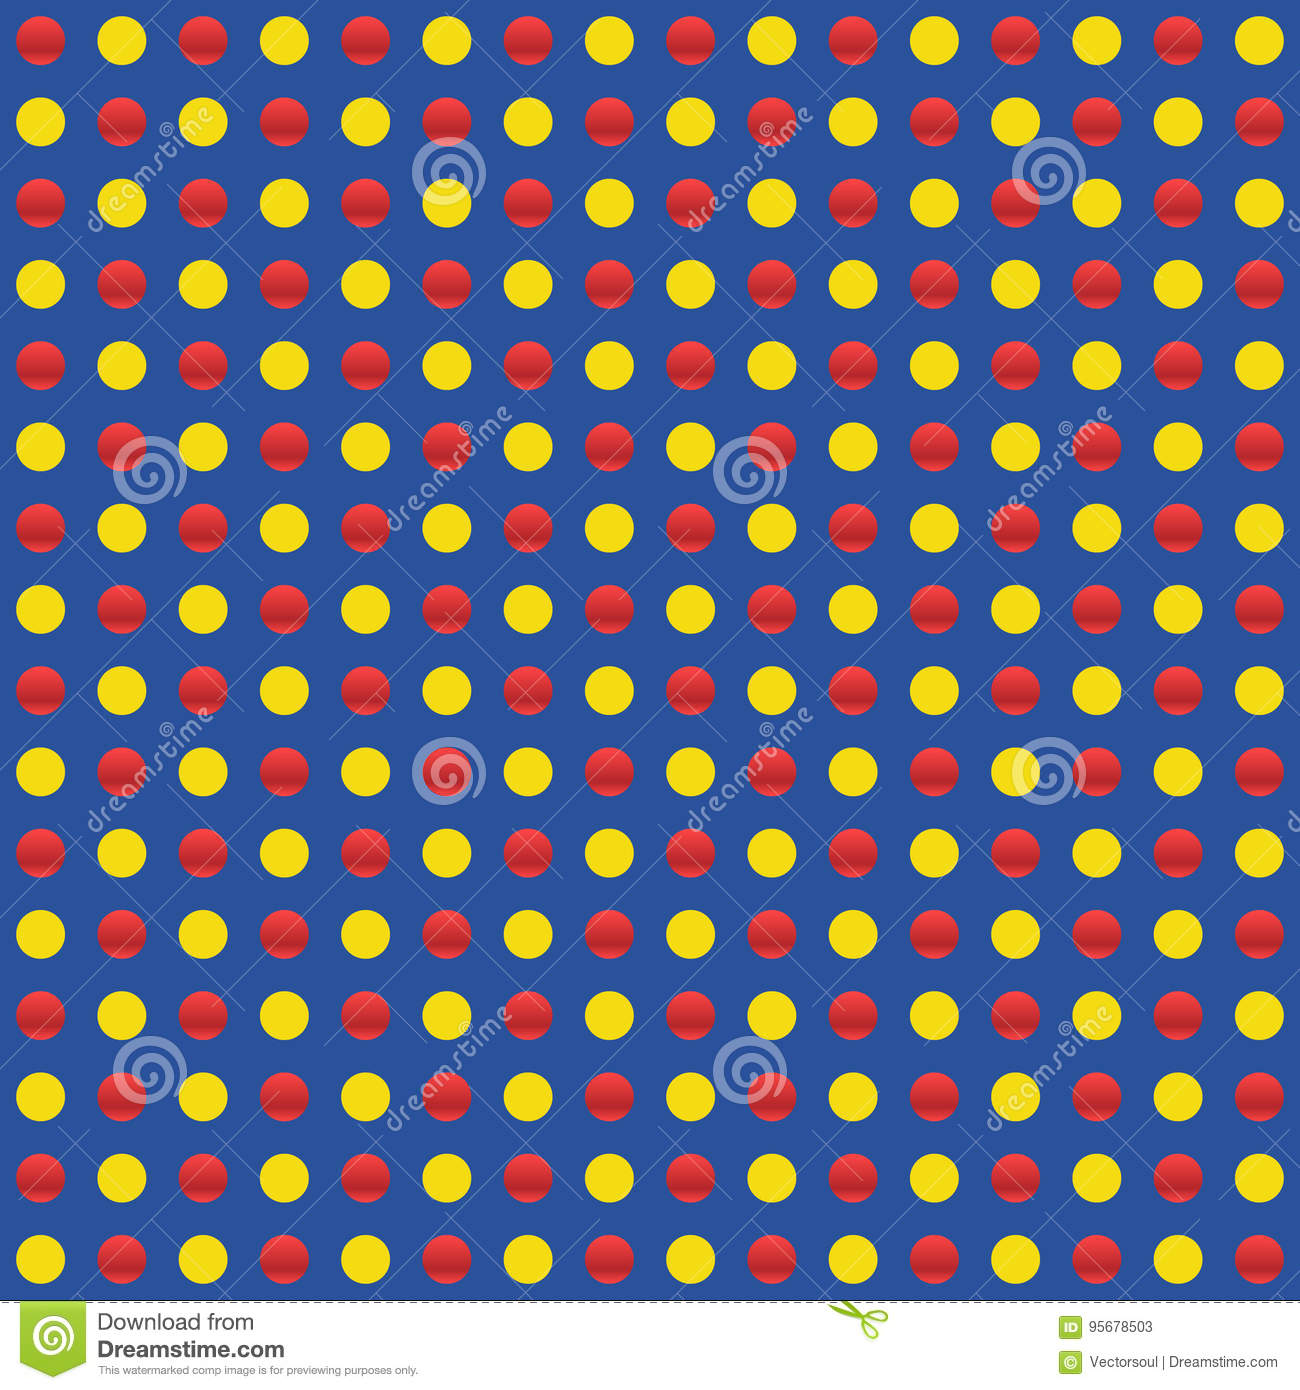 Repeatable circles, dots pattern. Colorful / multicolor texture